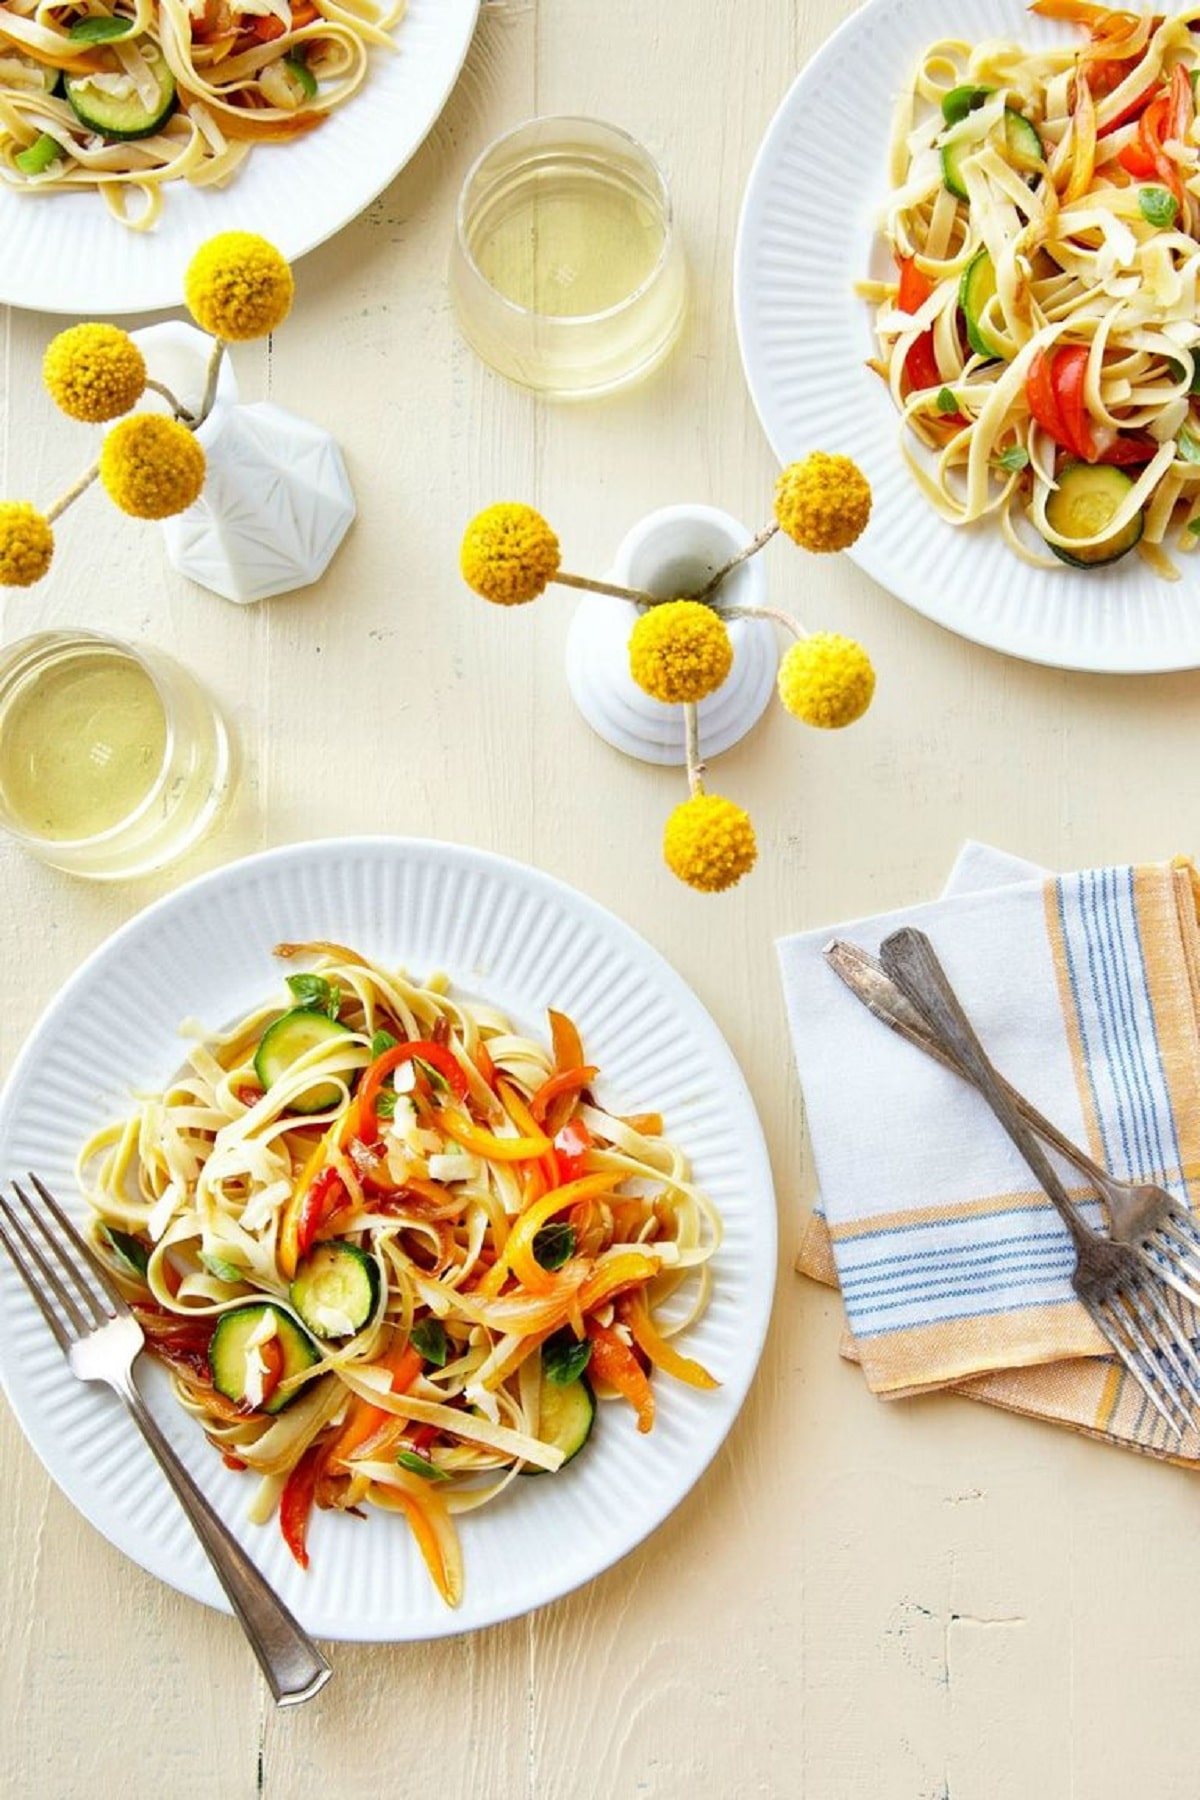 Pasta with Sautéed Peppers, Zucchini, and Smoked Mozzarella